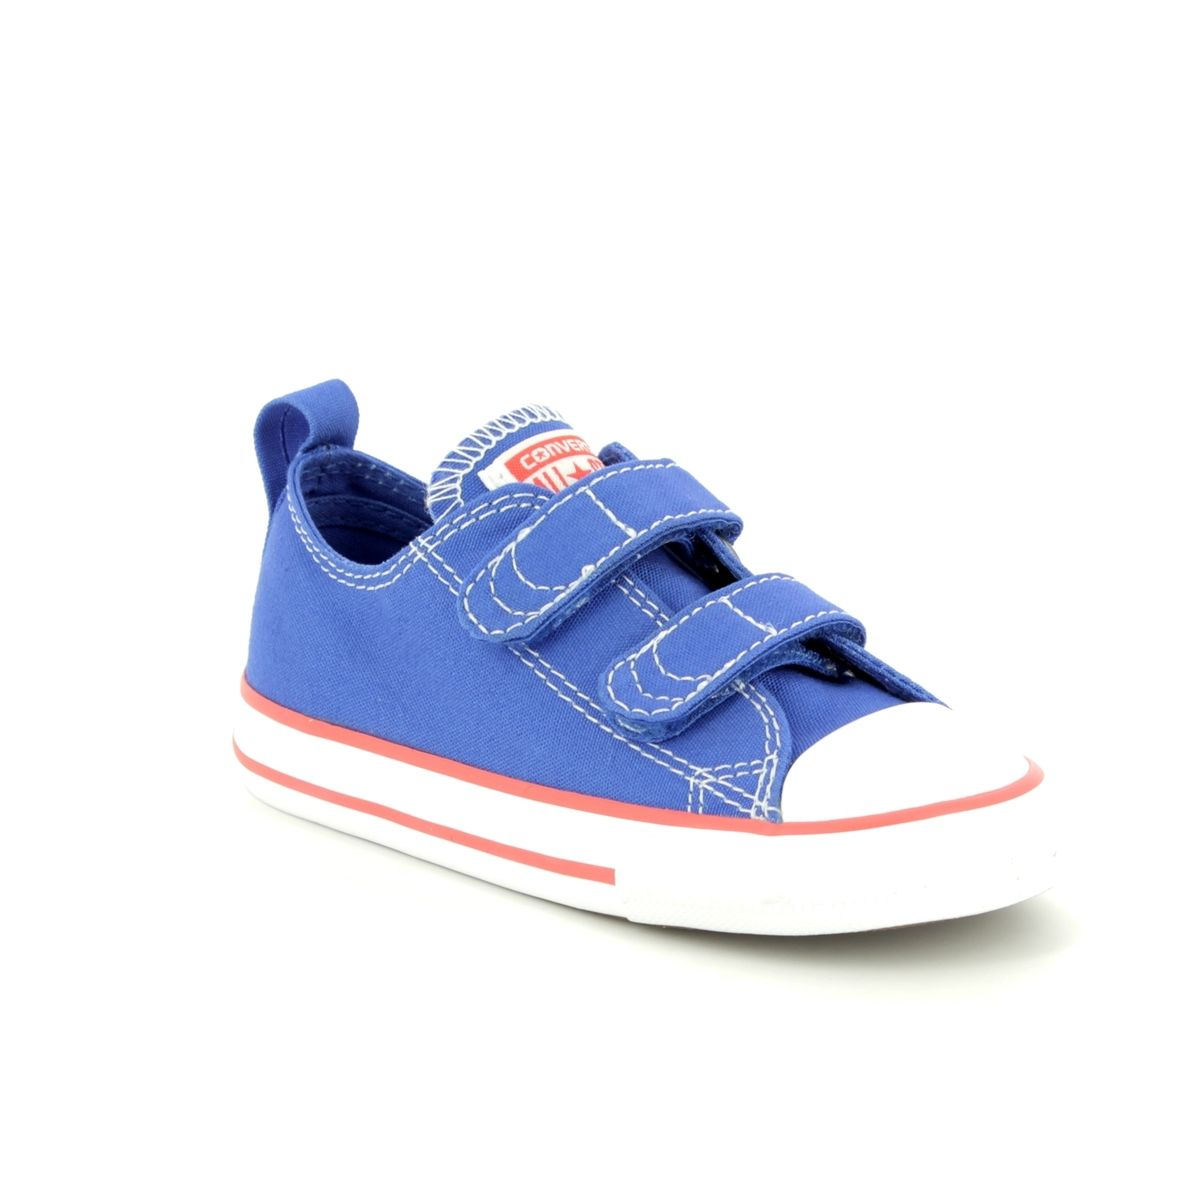 8e6bf2a0d948 Converse All Star Ox Velcro Infants 760050C Blue Kids trainers